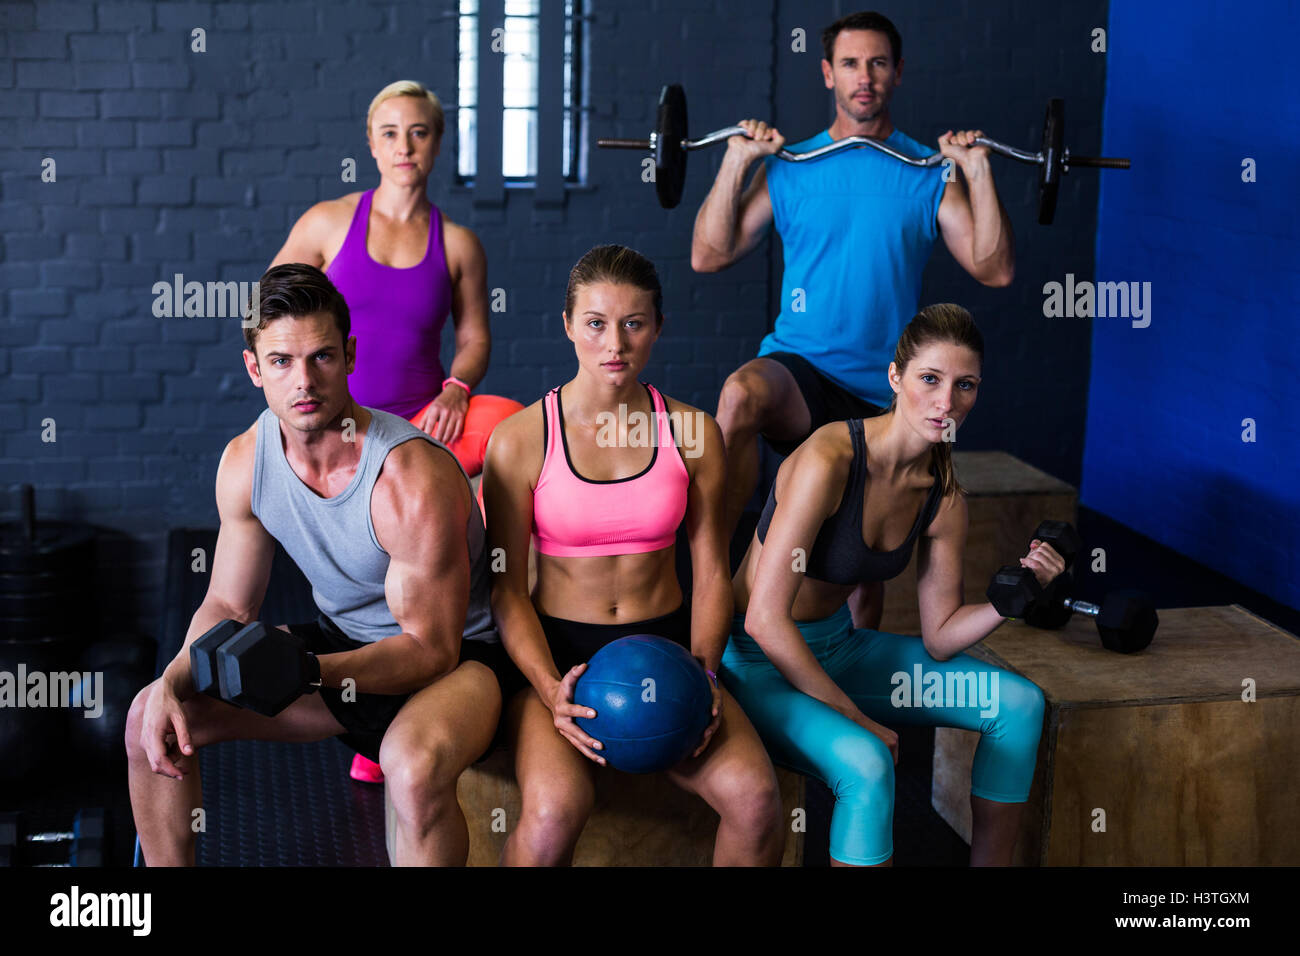 Athletes with exercise equipment - Stock Image